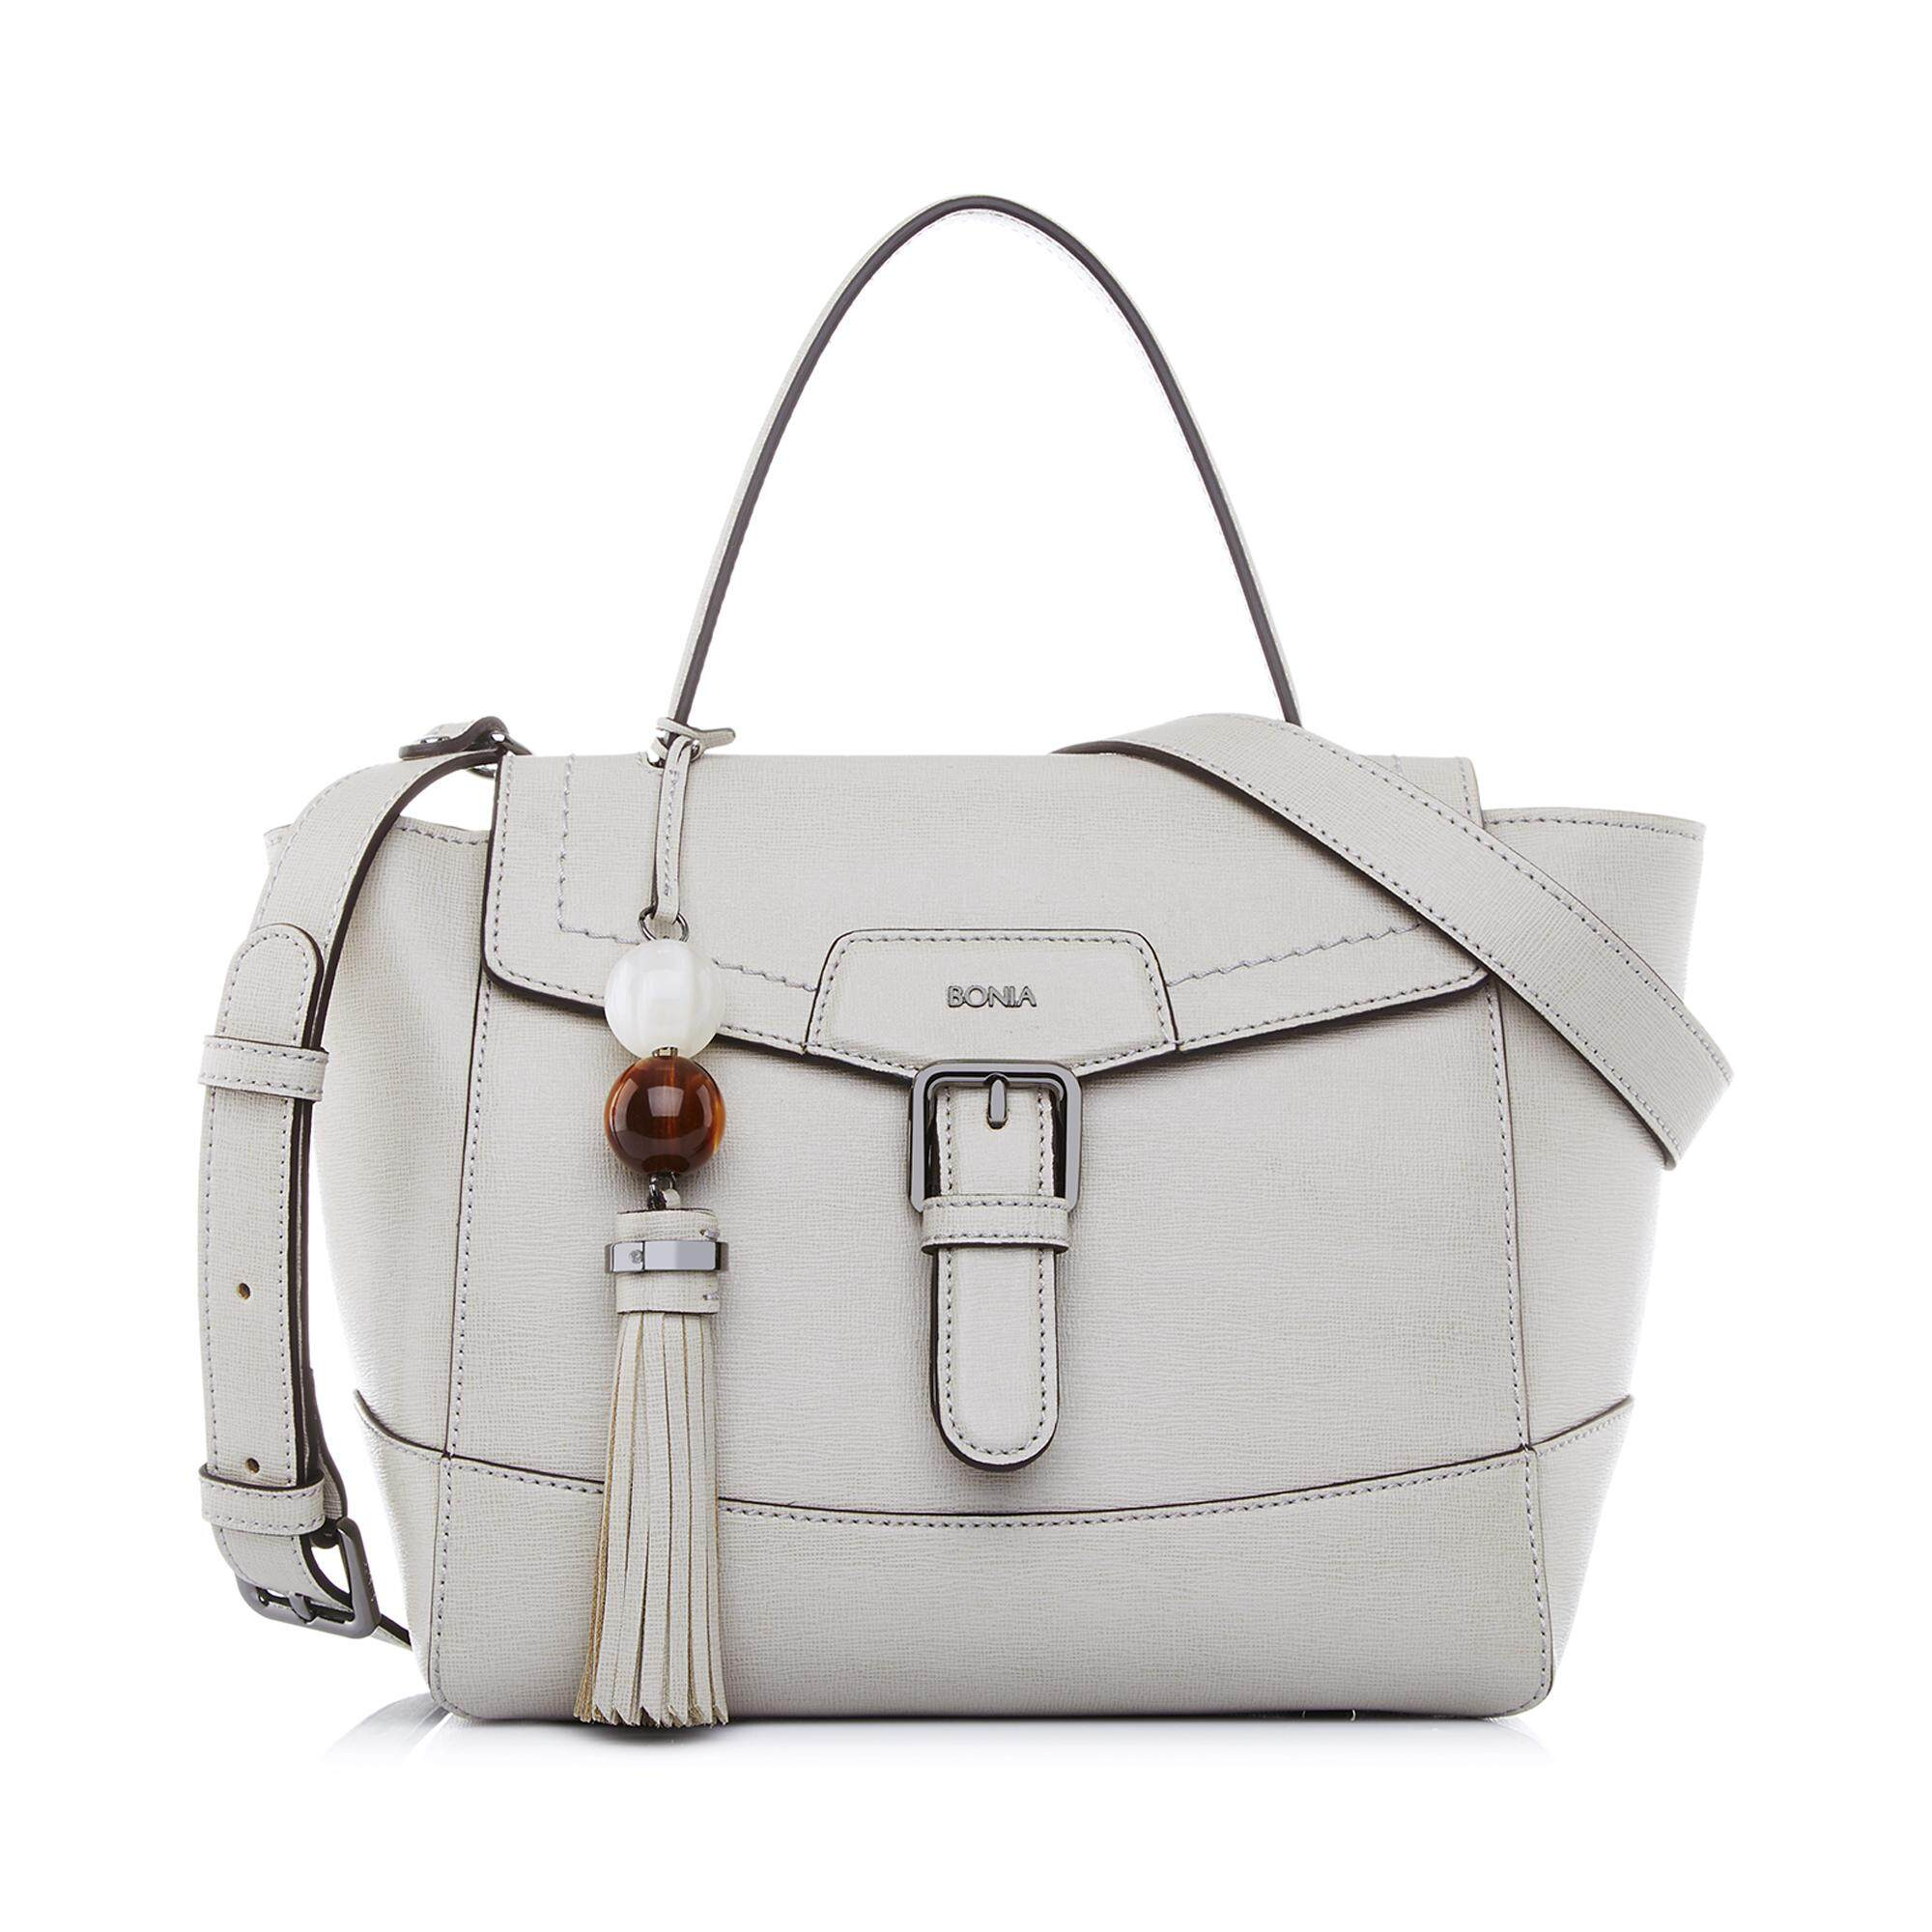 Bonia Light Grey Betsy Satchel M